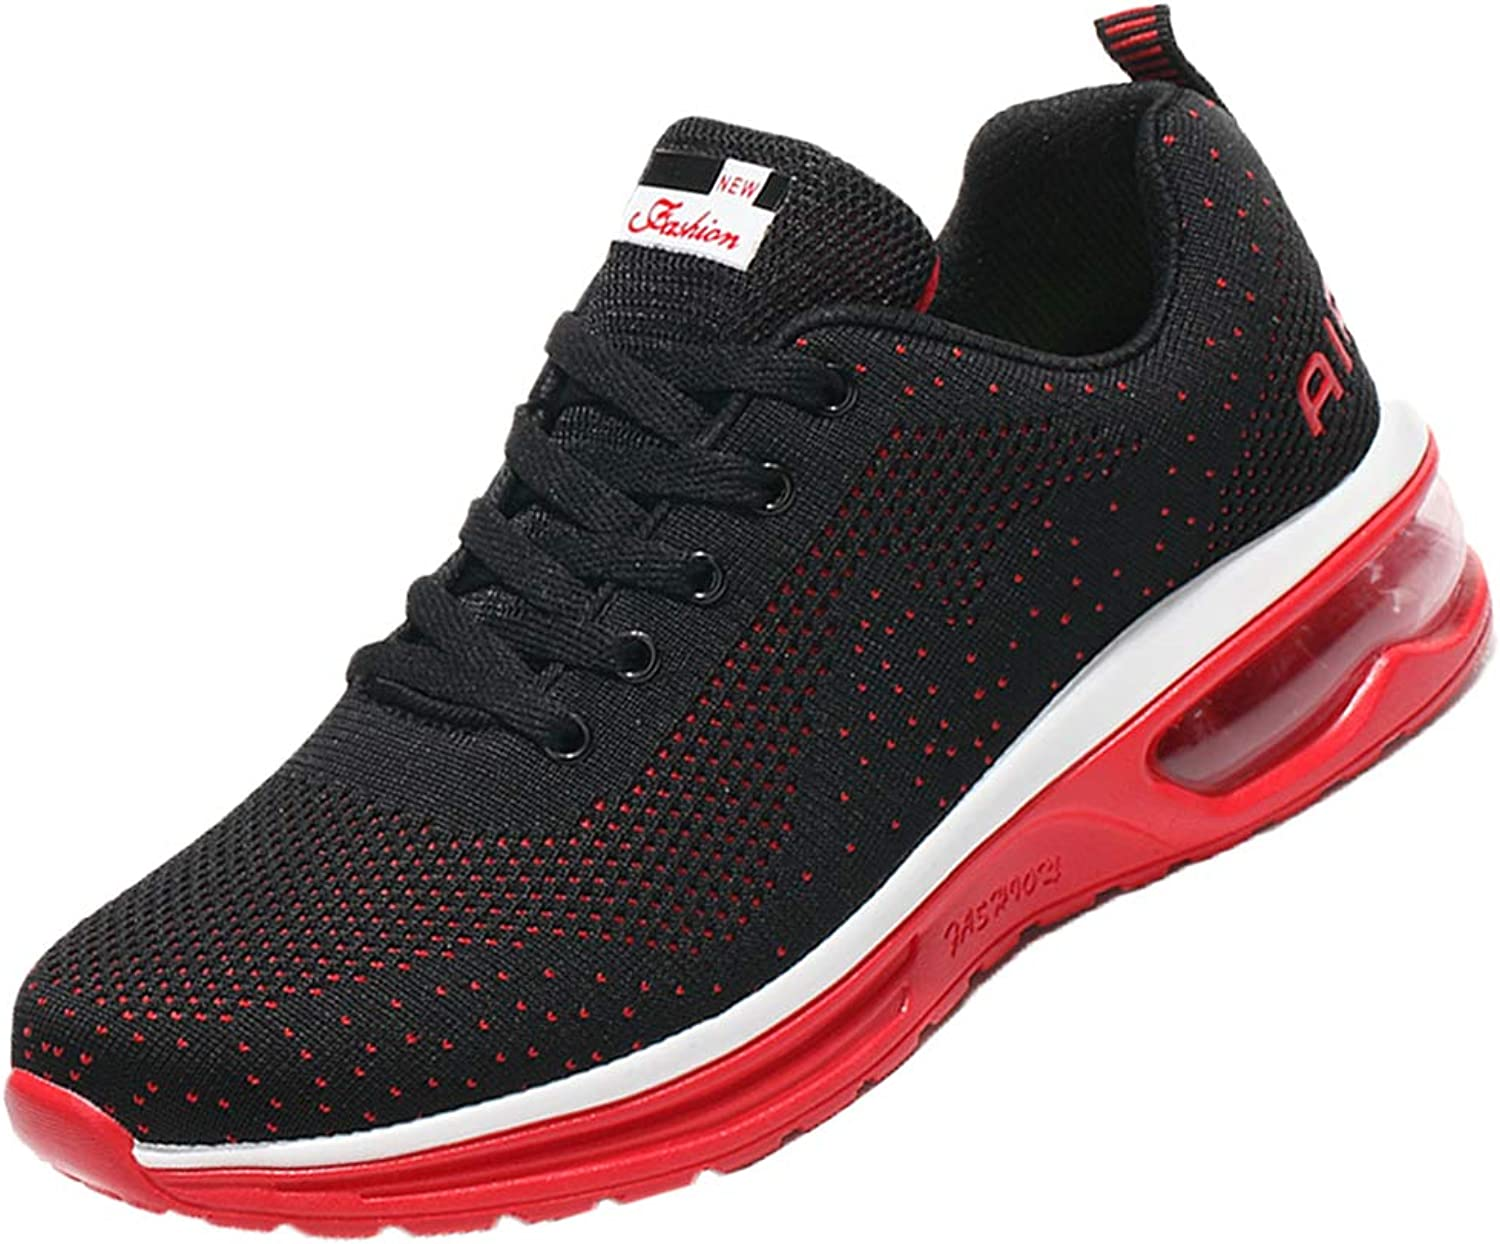 QTMS Womens Mens Running shoes US5.5-11